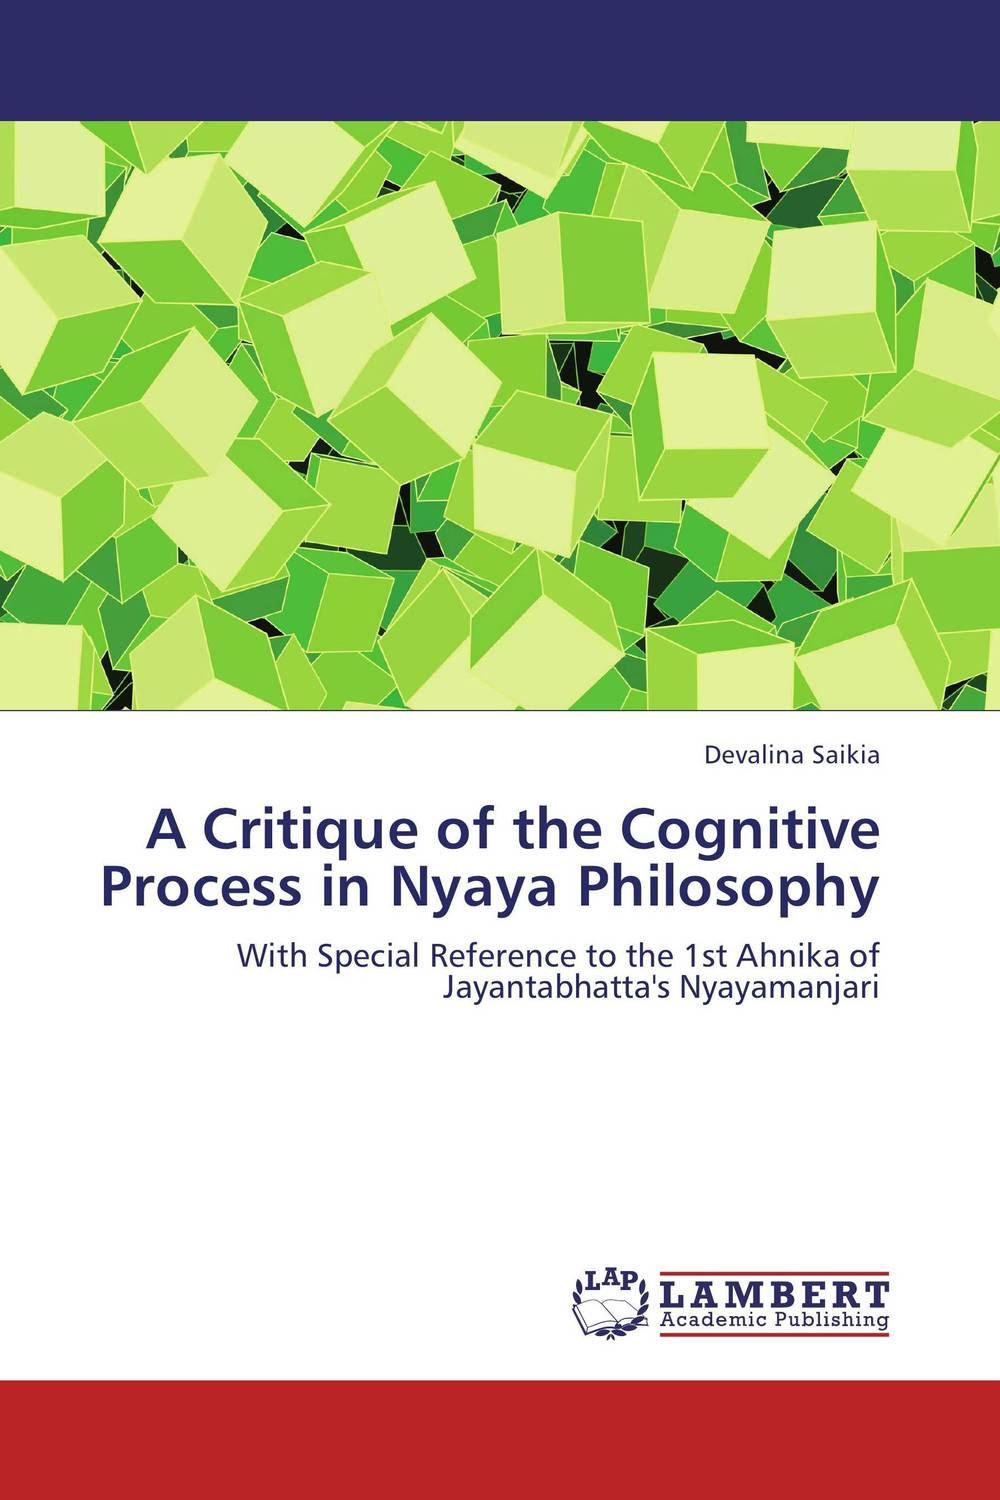 A Critique of the Cognitive Process in Nyaya Philosophy a critique of the socialist theories of nkrumah nyerere and awolowo